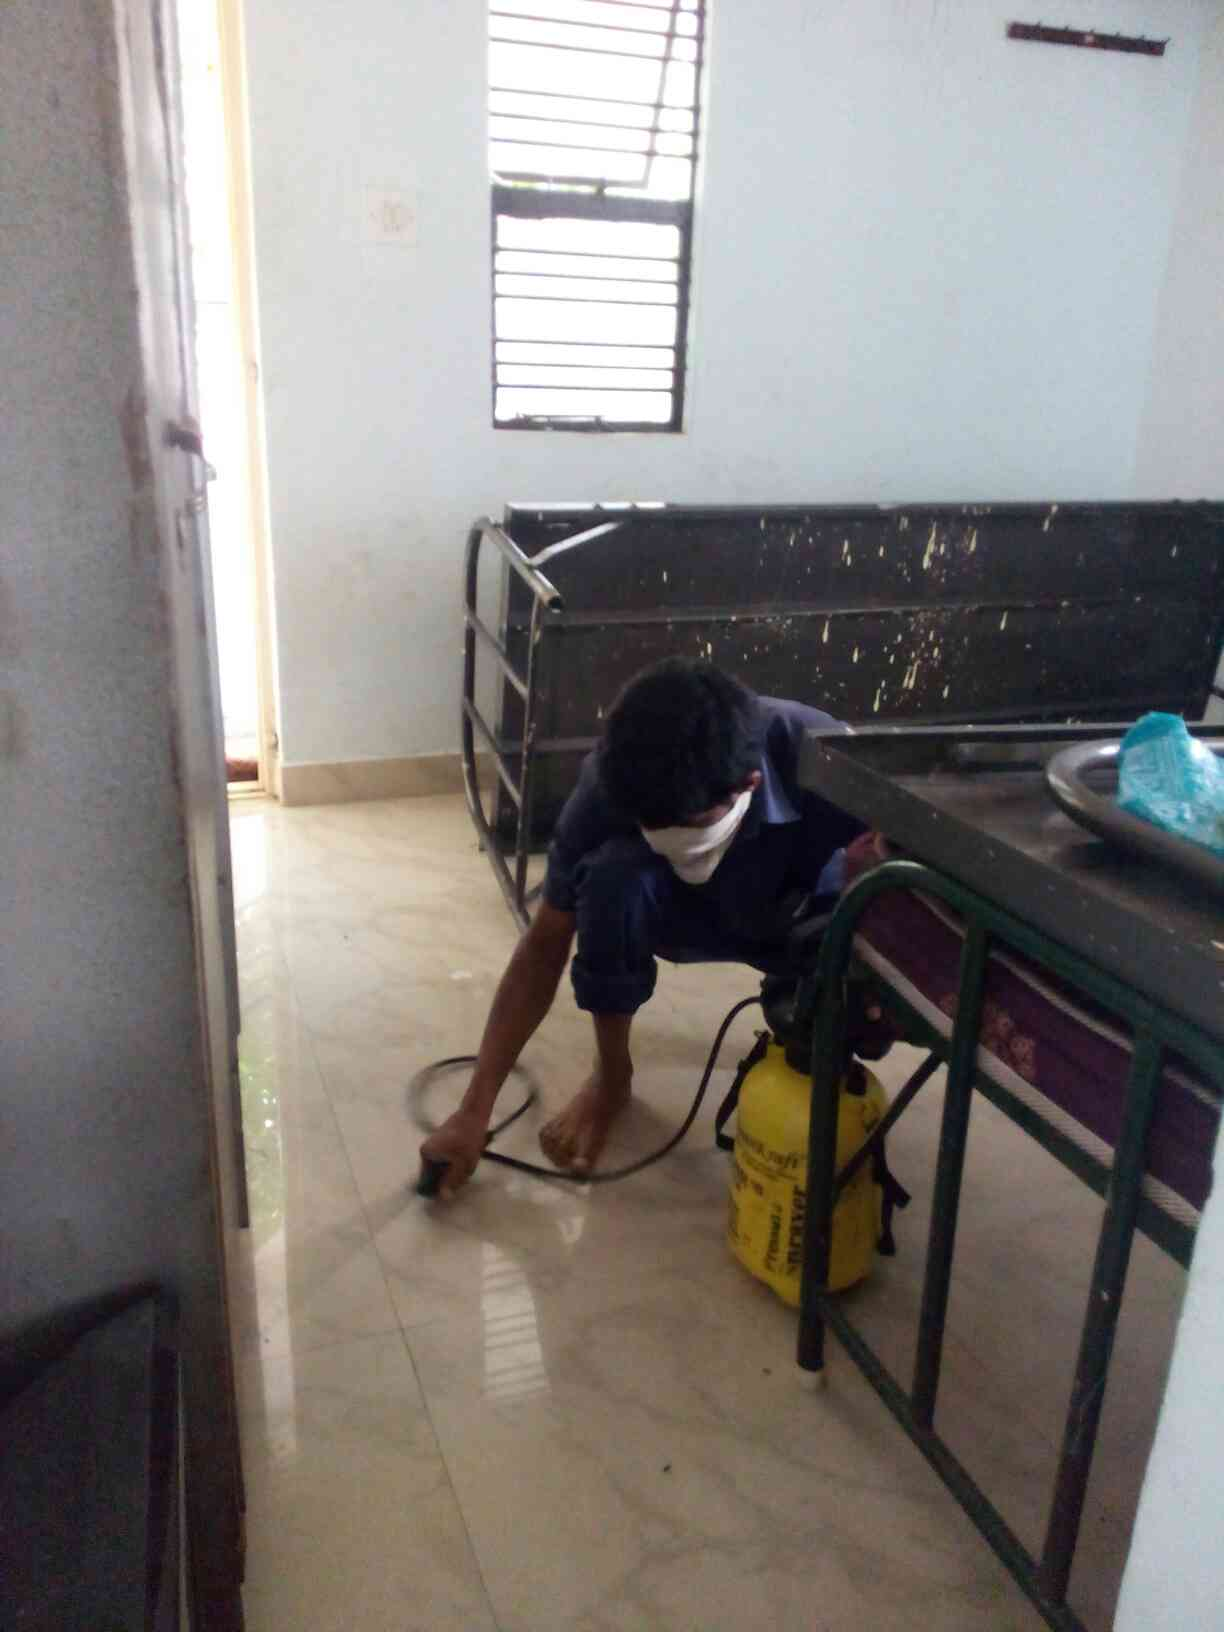 Bed bugs and cockroaches in house will lead to unhygienic conditions with rashes and etc., so for treatment call IMMACULATE-BIO-KLEANERS for bedbugs treatment Cockroaches treatment and termite treatment.